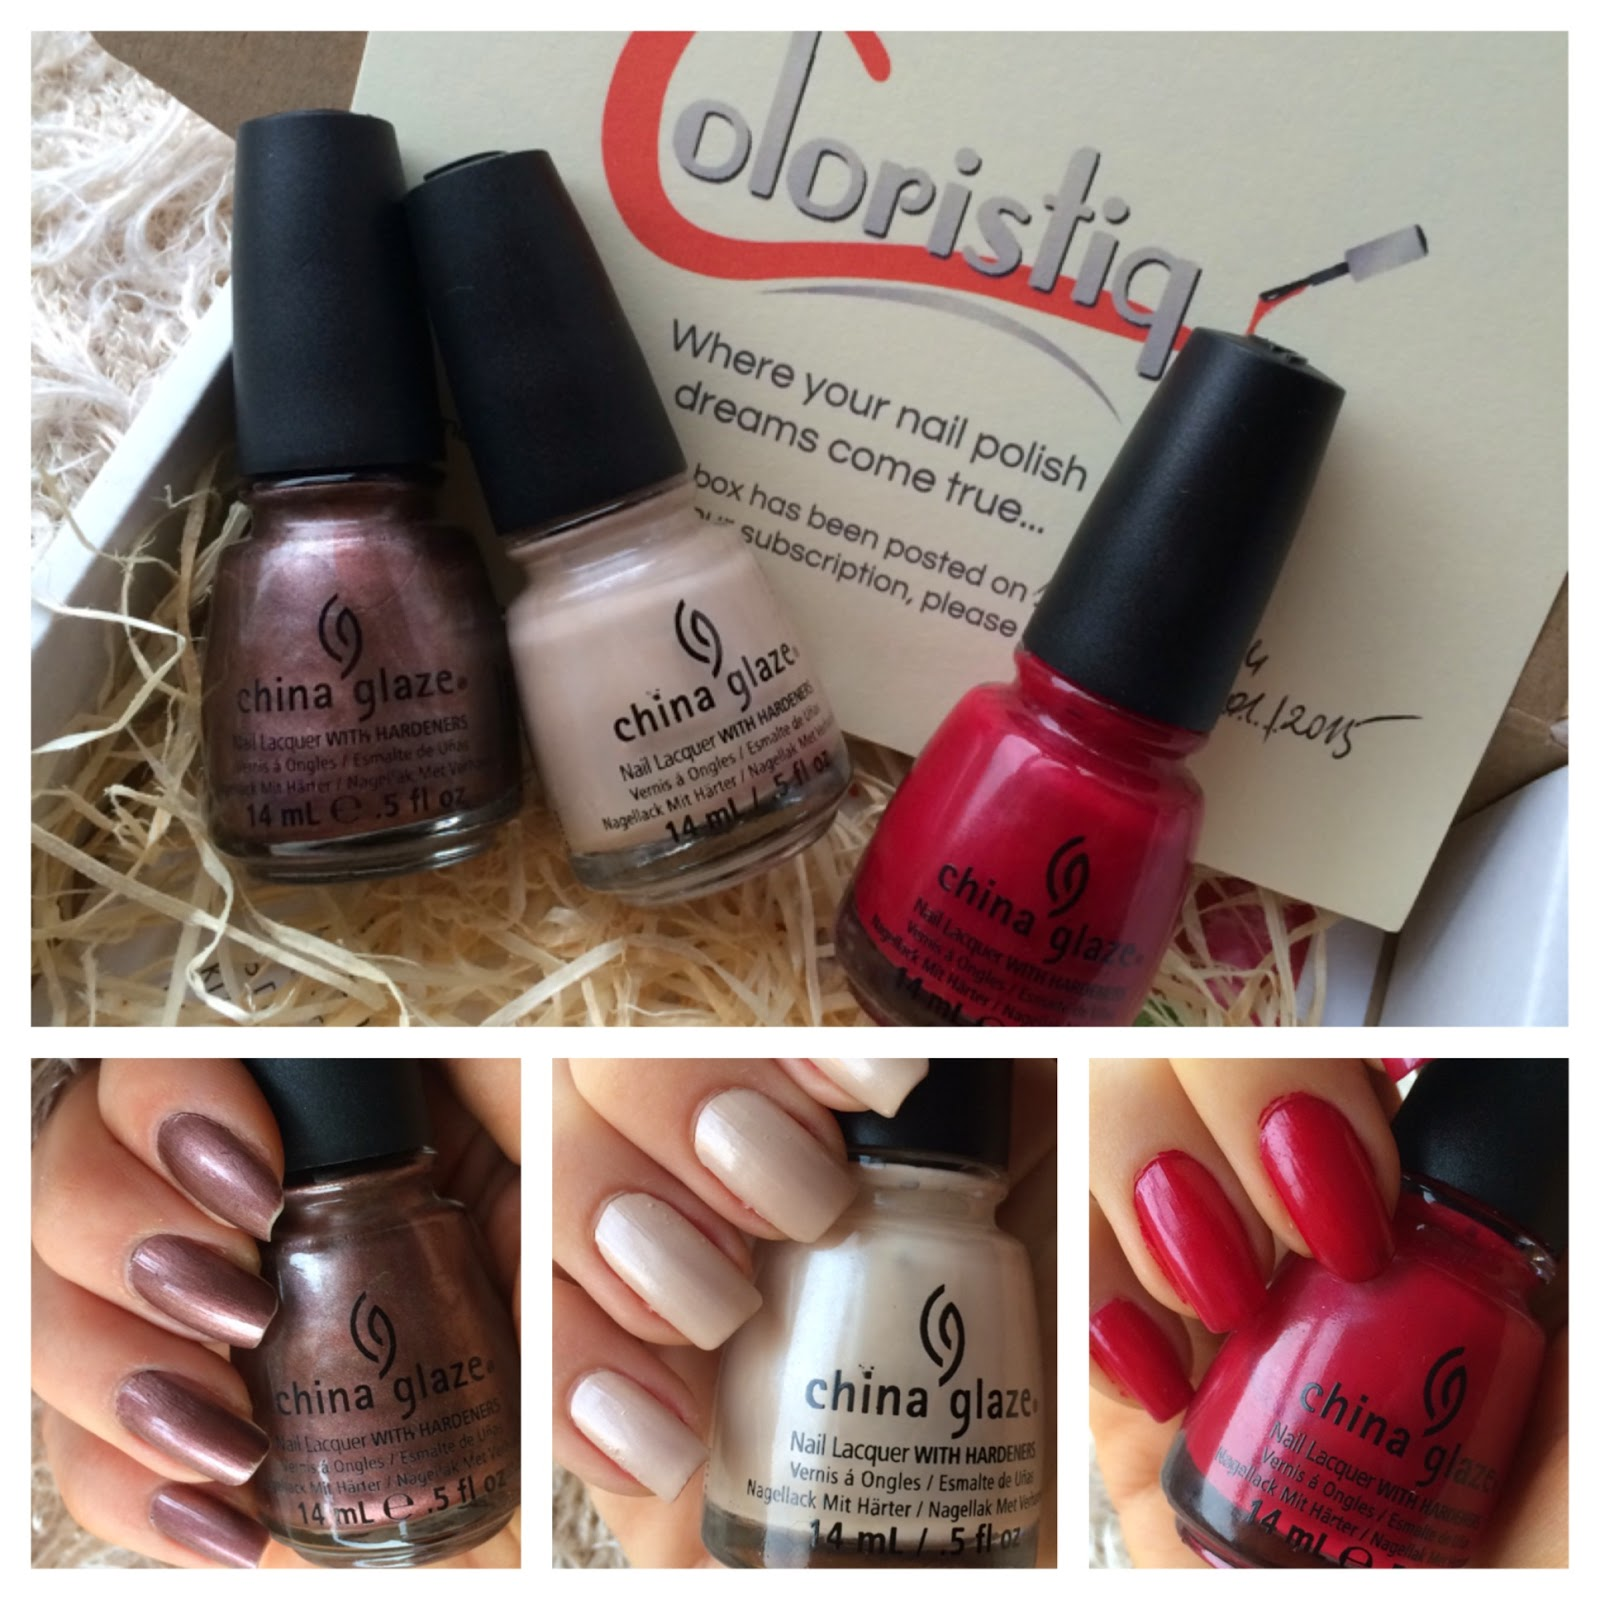 coloristiq-nail-polish-monthly-rental-box